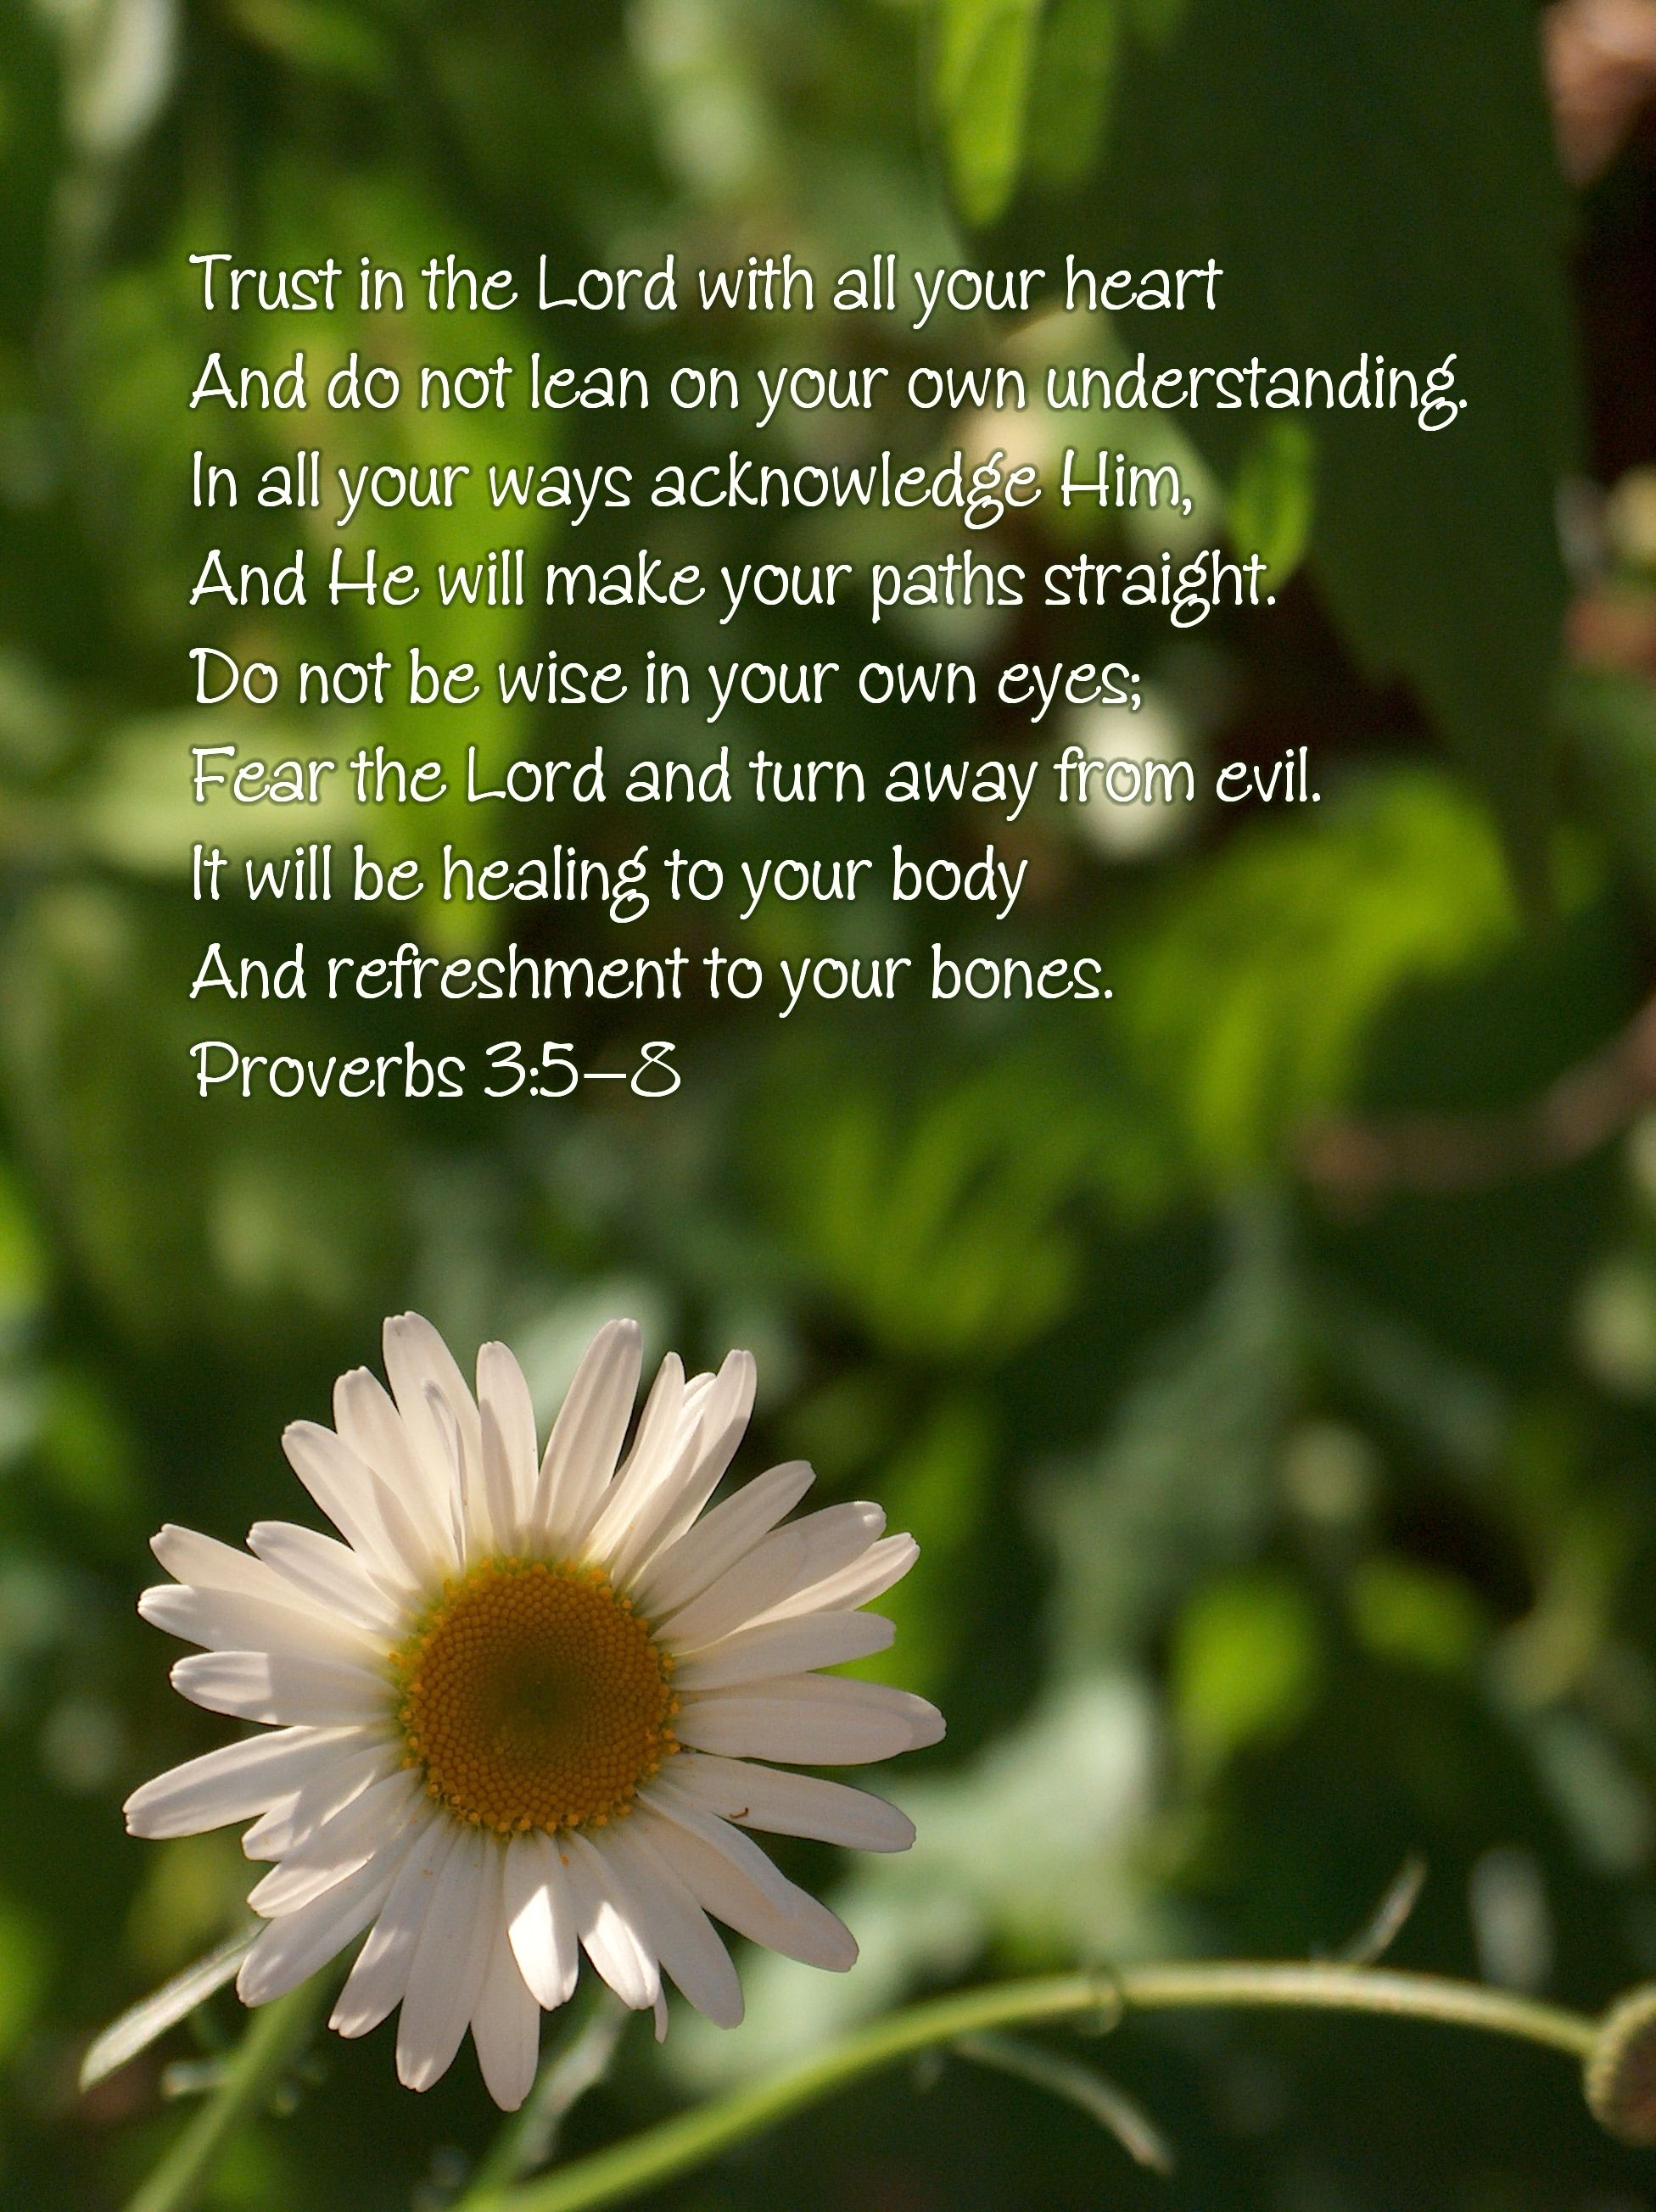 Proverbs 3 5 8 Trust In The Lord With All Your Heart I Definitely Skimp On The All Part Sometim Fear Of The Lord Scripture Pictures Inspirational Pictures